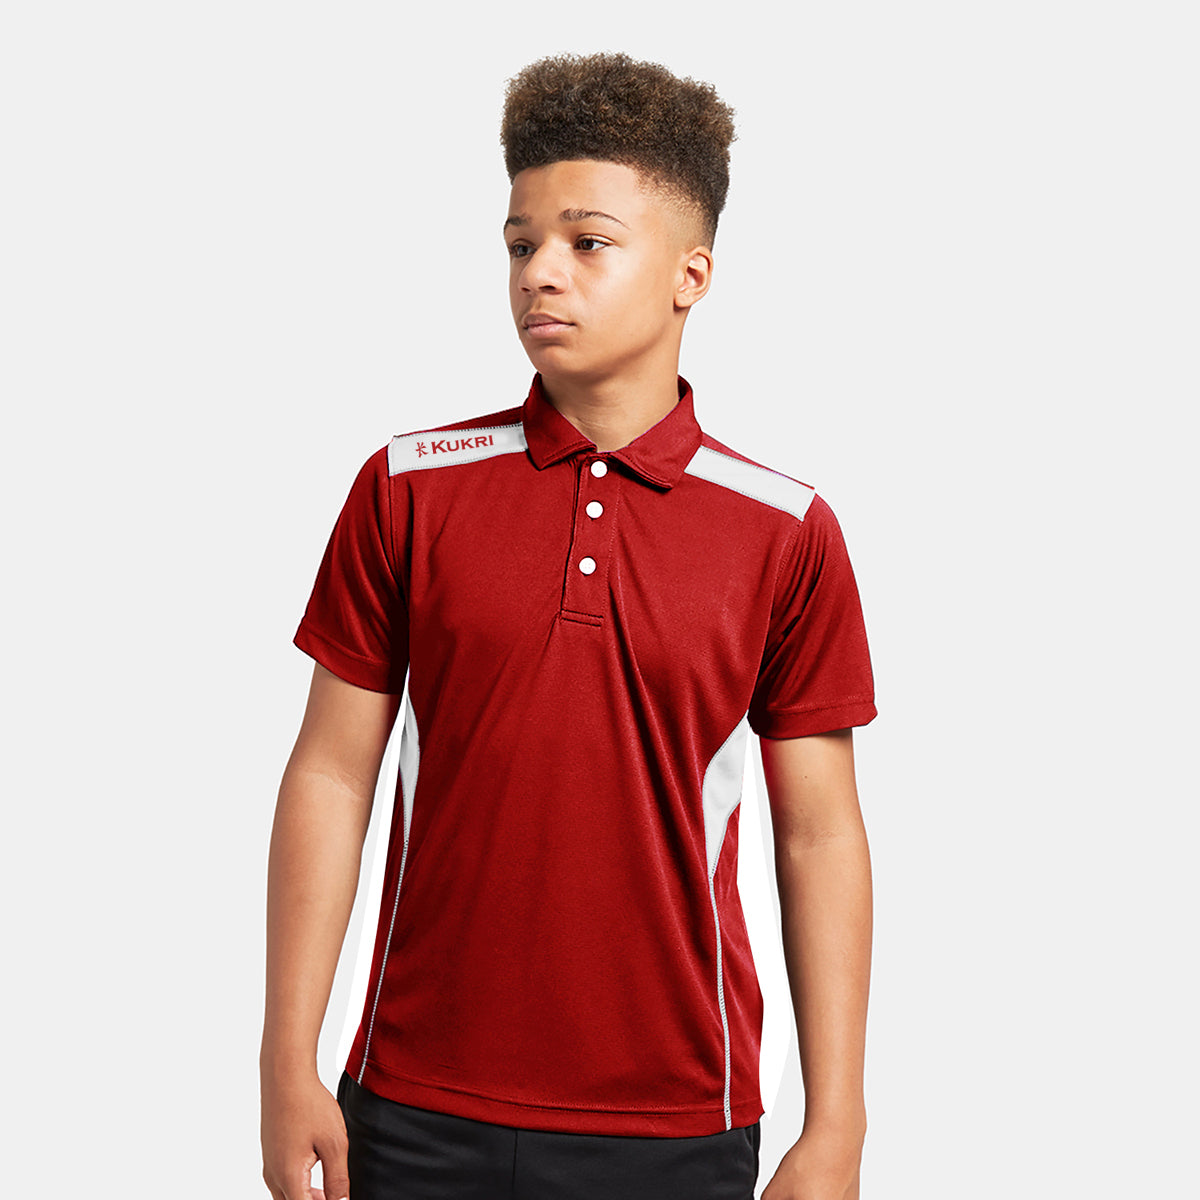 Kukri Half Sleeve Polo Shirt For Boys-Red & White-BE8133